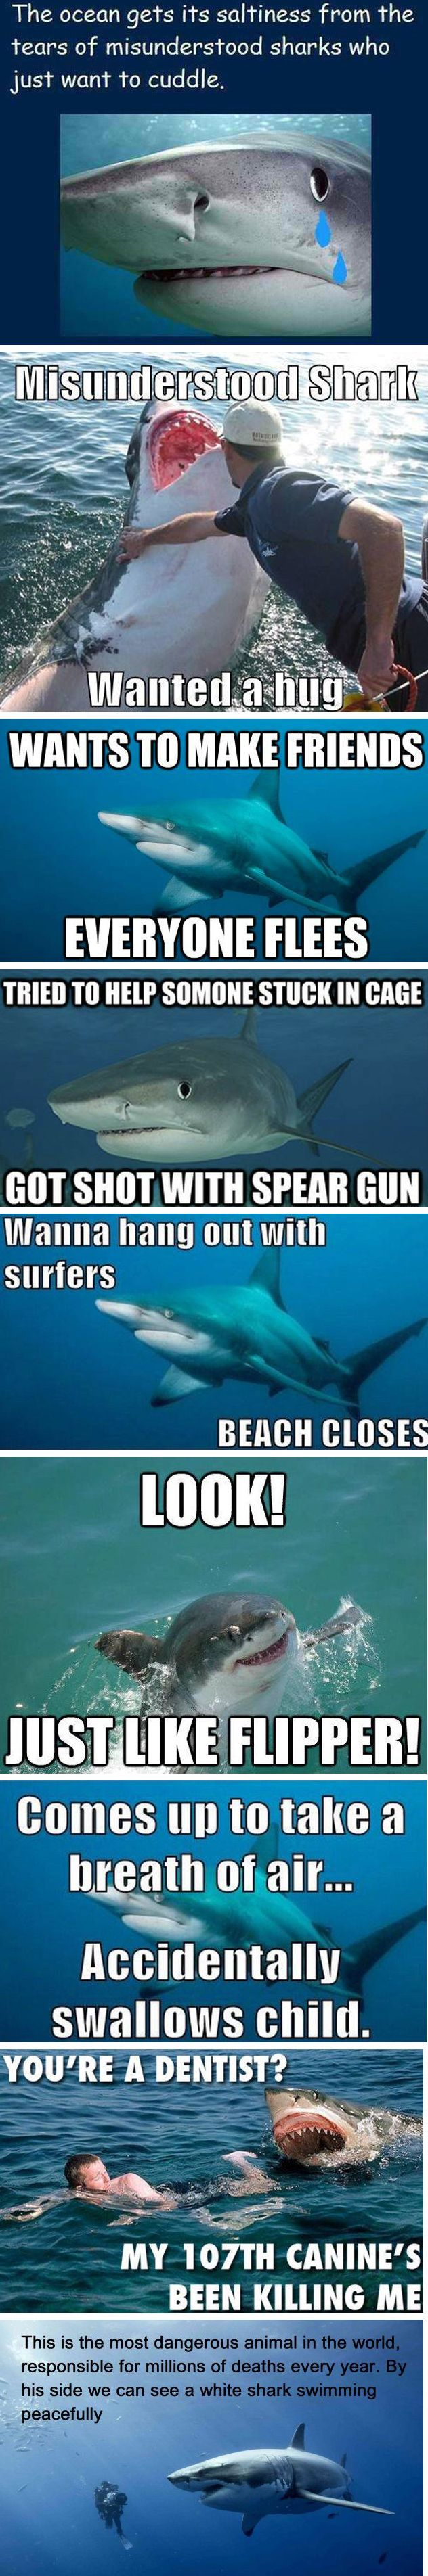 Misunderstood sharks. People kill more sharks per second than sharks kill people per year